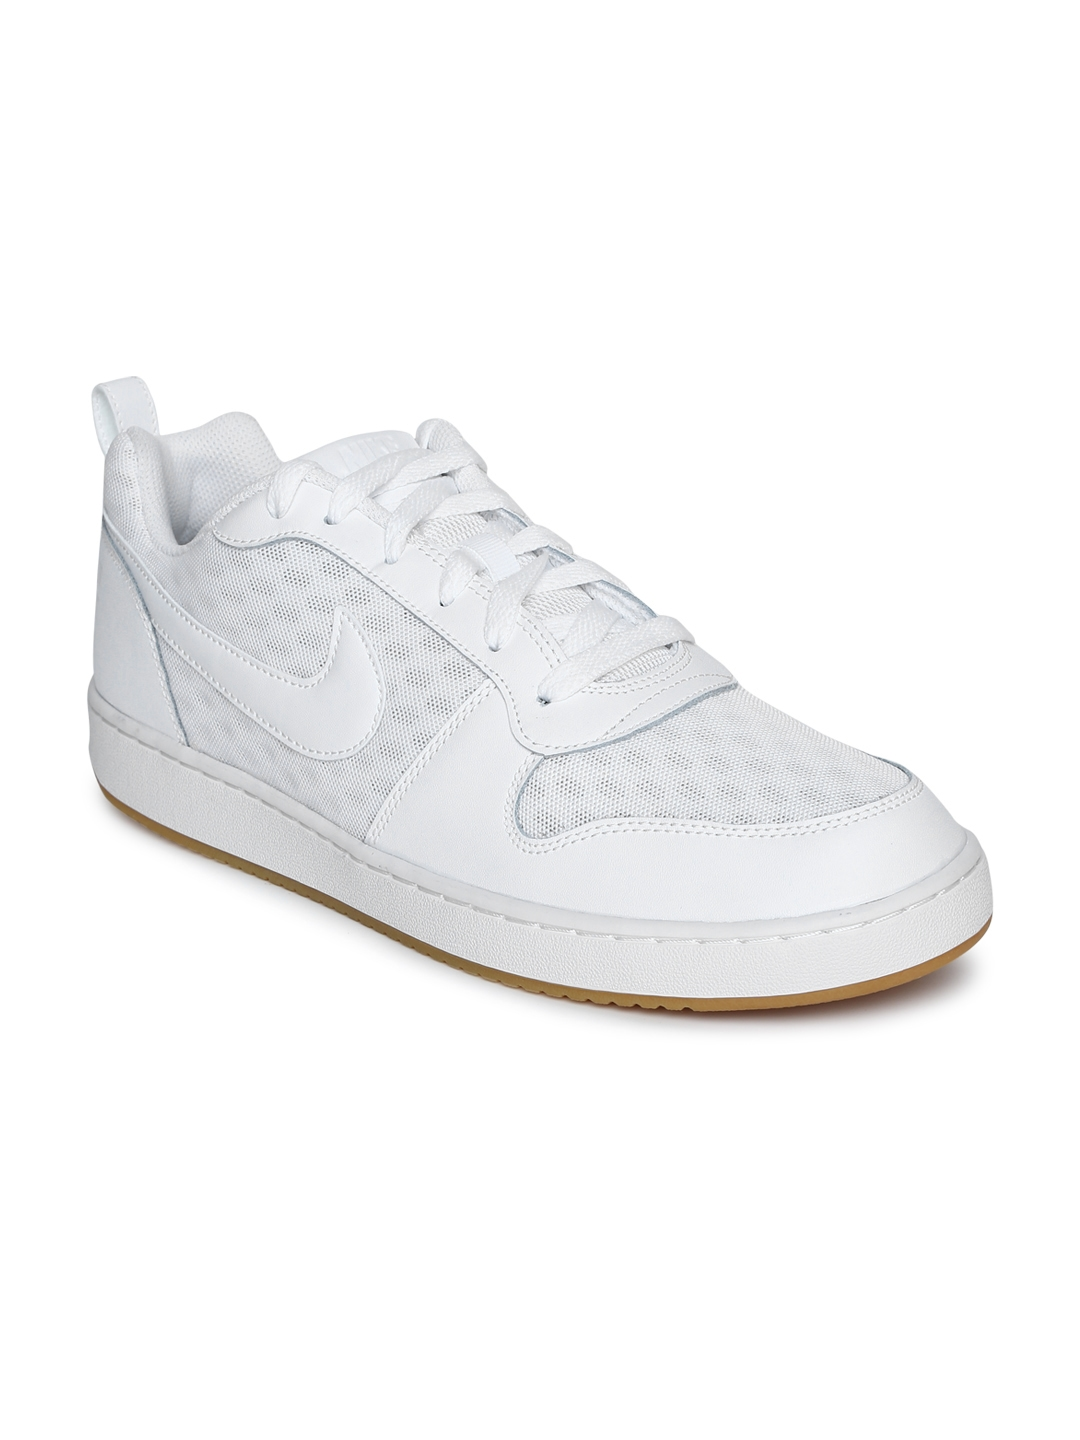 Buy Nike Men White COURT BOROUGH LOW Sneakers - Casual Shoes for Men ... 3ddc51357